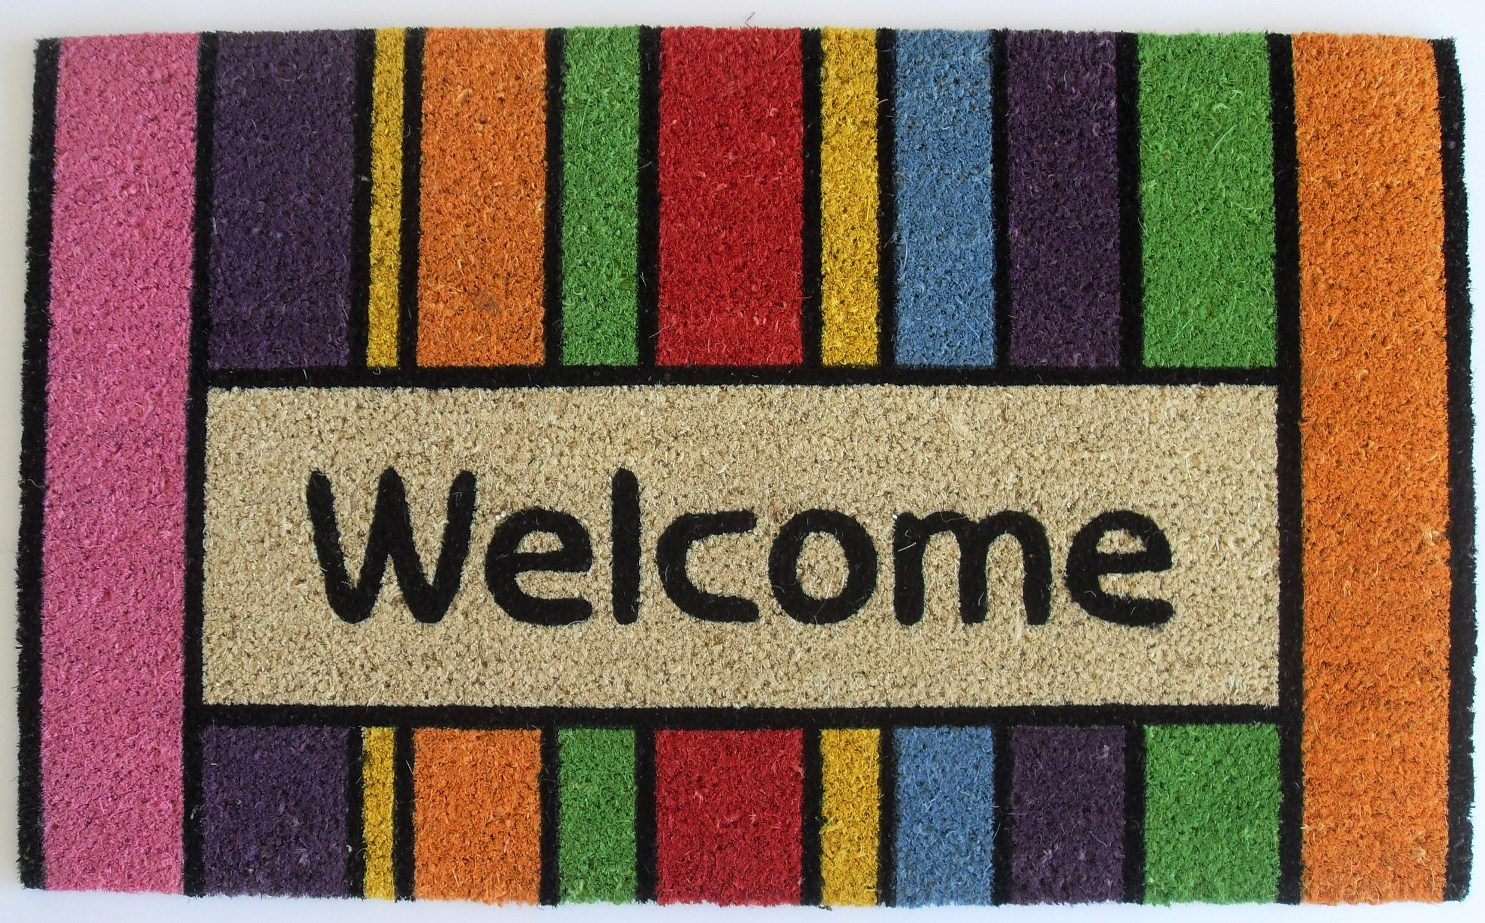 welcome-mat-image.jpg